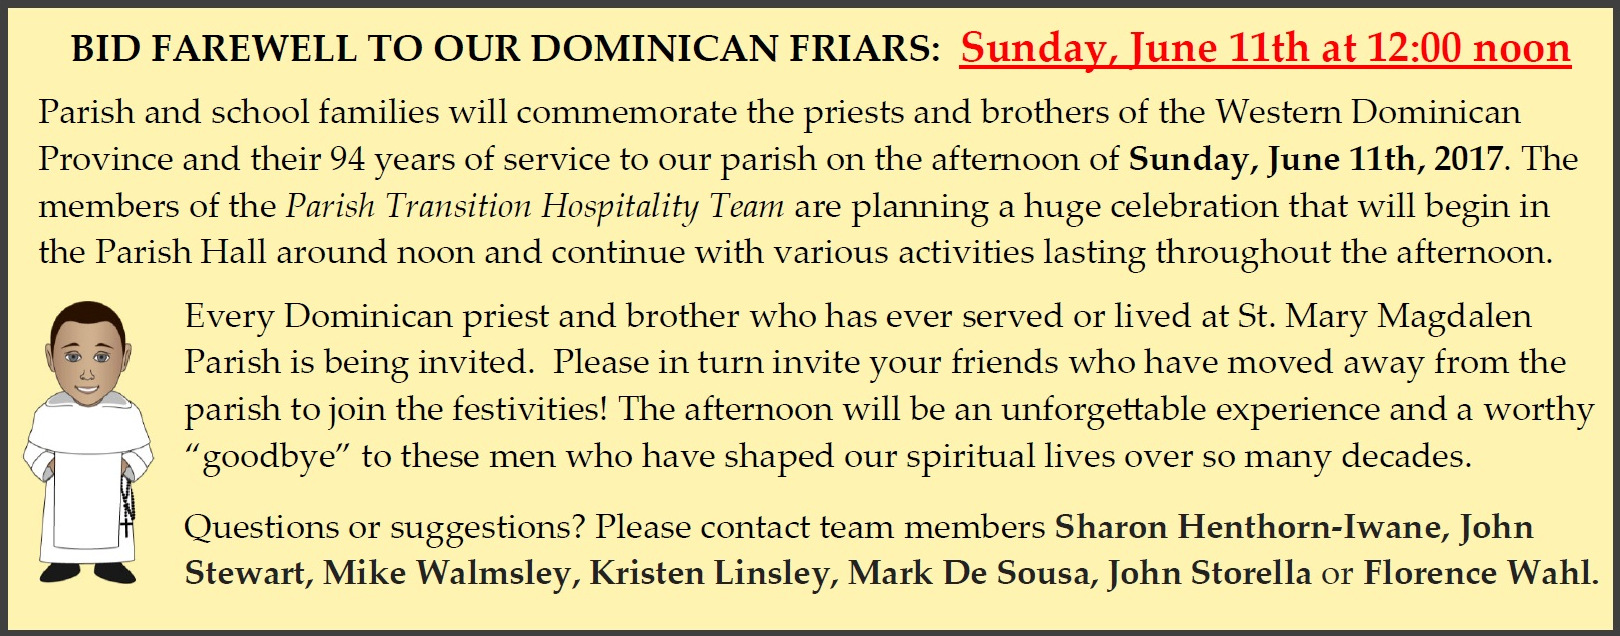 Please see the announcement in the April 16, 2016 Bulletin about the Farewell Celebration for the Dominican Friars, enhanced by a cute cartoon-image of a dark-skninned Dominican friar.